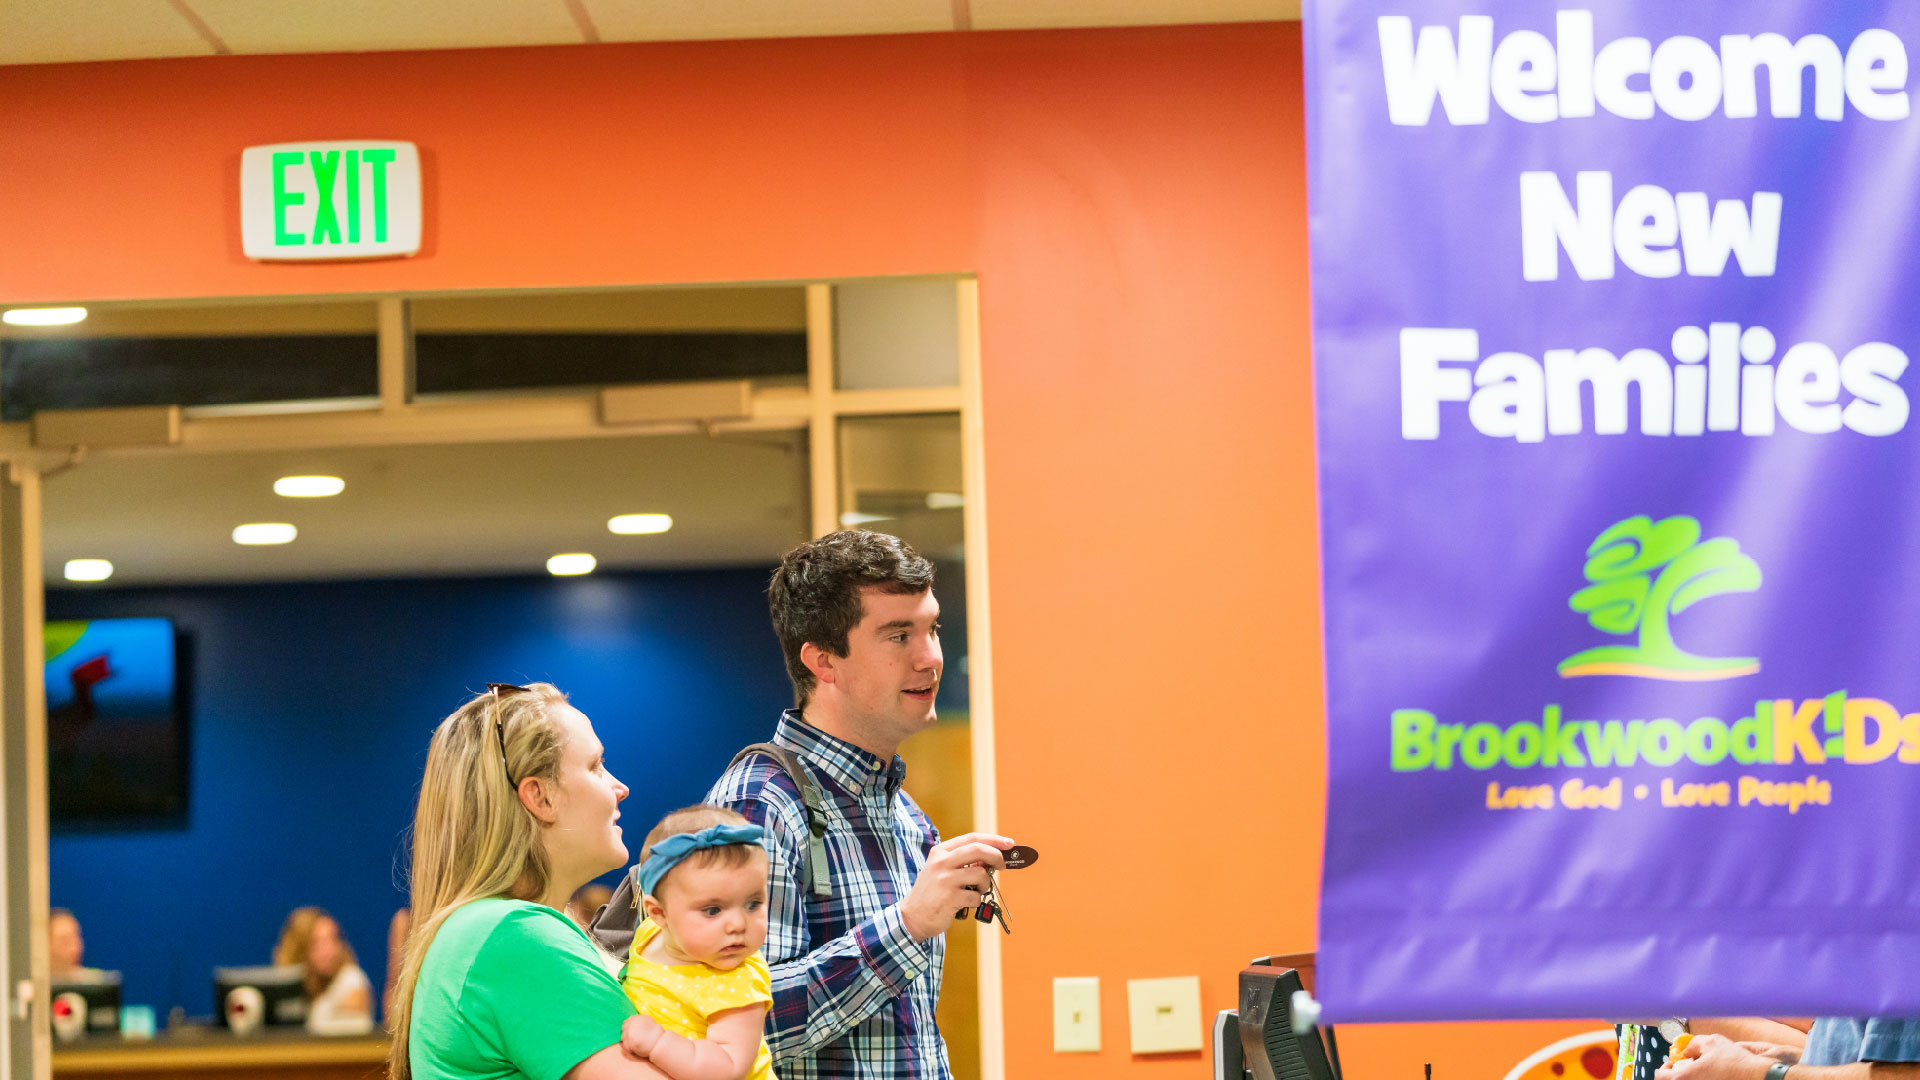 A family with a baby stands in front of the Welcome New Families banner at Brookwood Church